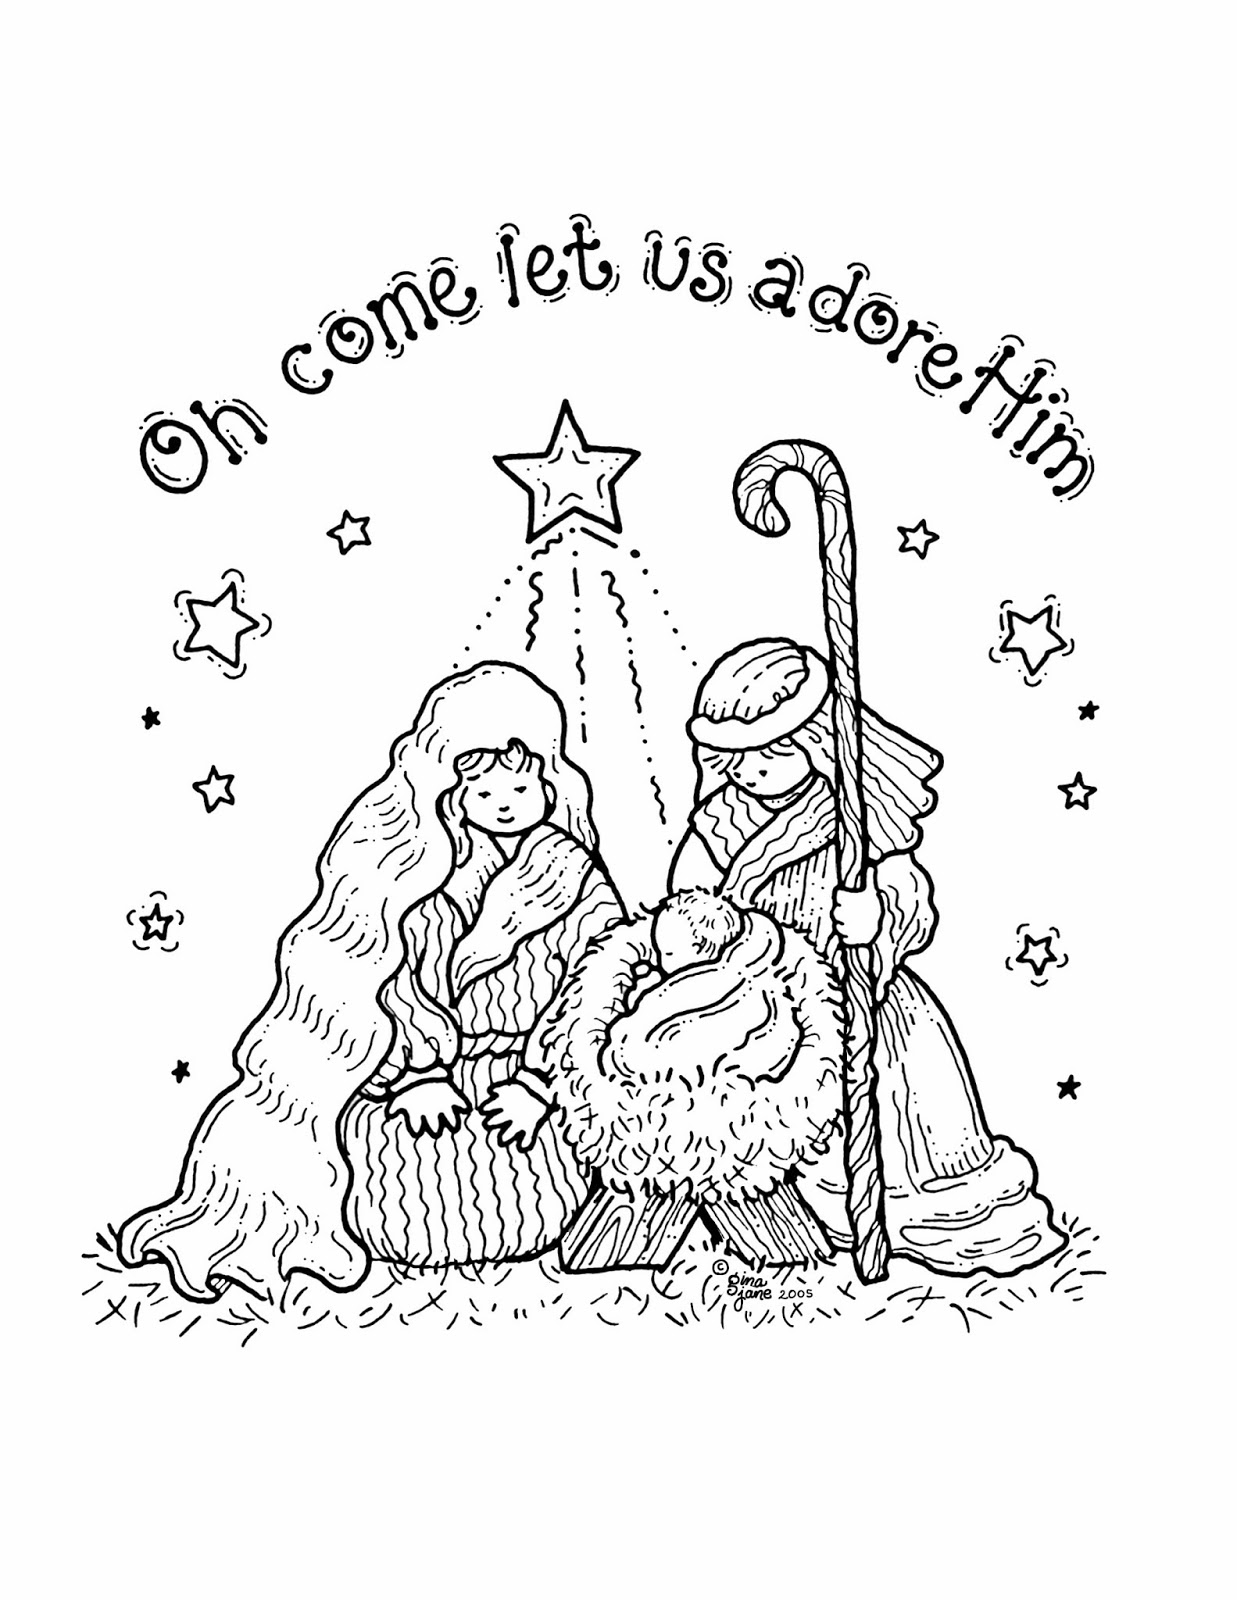 Childrens coloring pages of nativity - Children S Nativity Coloring Pages Nativity Coloring Sheets Download